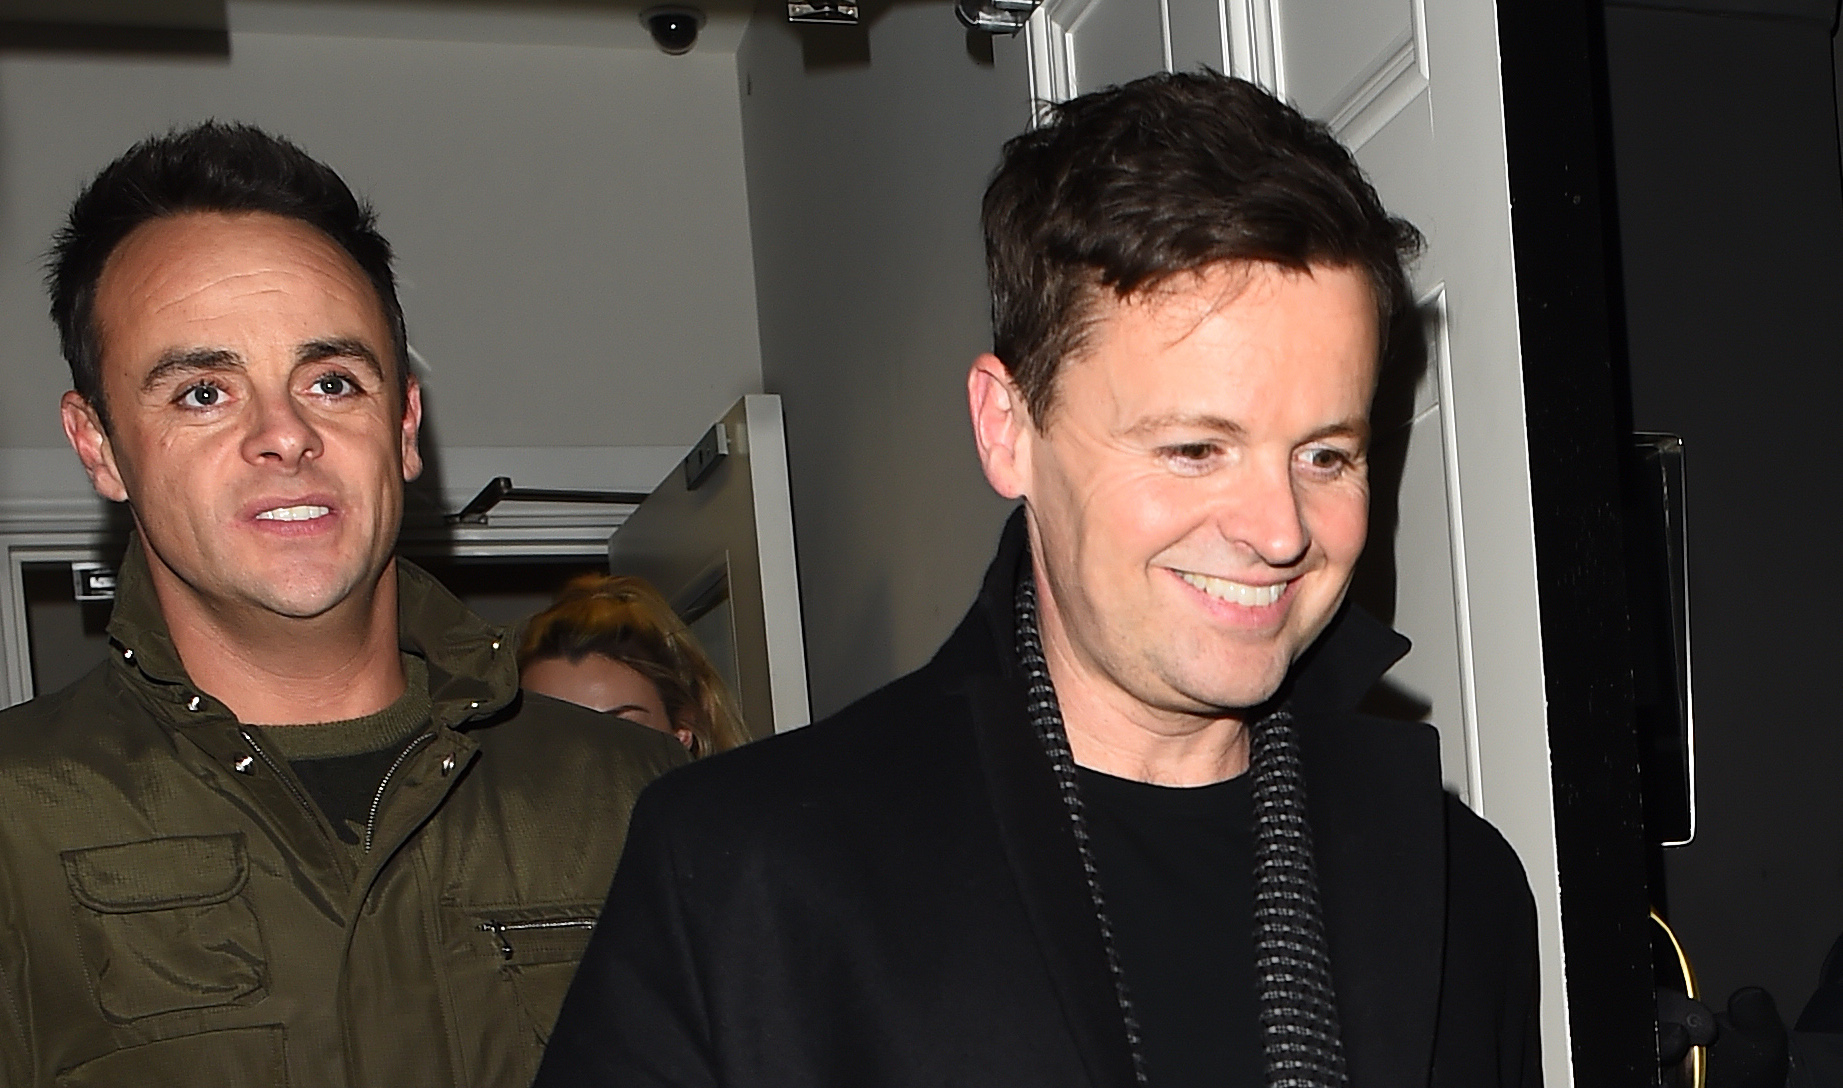 Ant McPartlin and Dec Donnelly donate thousands for Britain's Got Talent pal's rehab